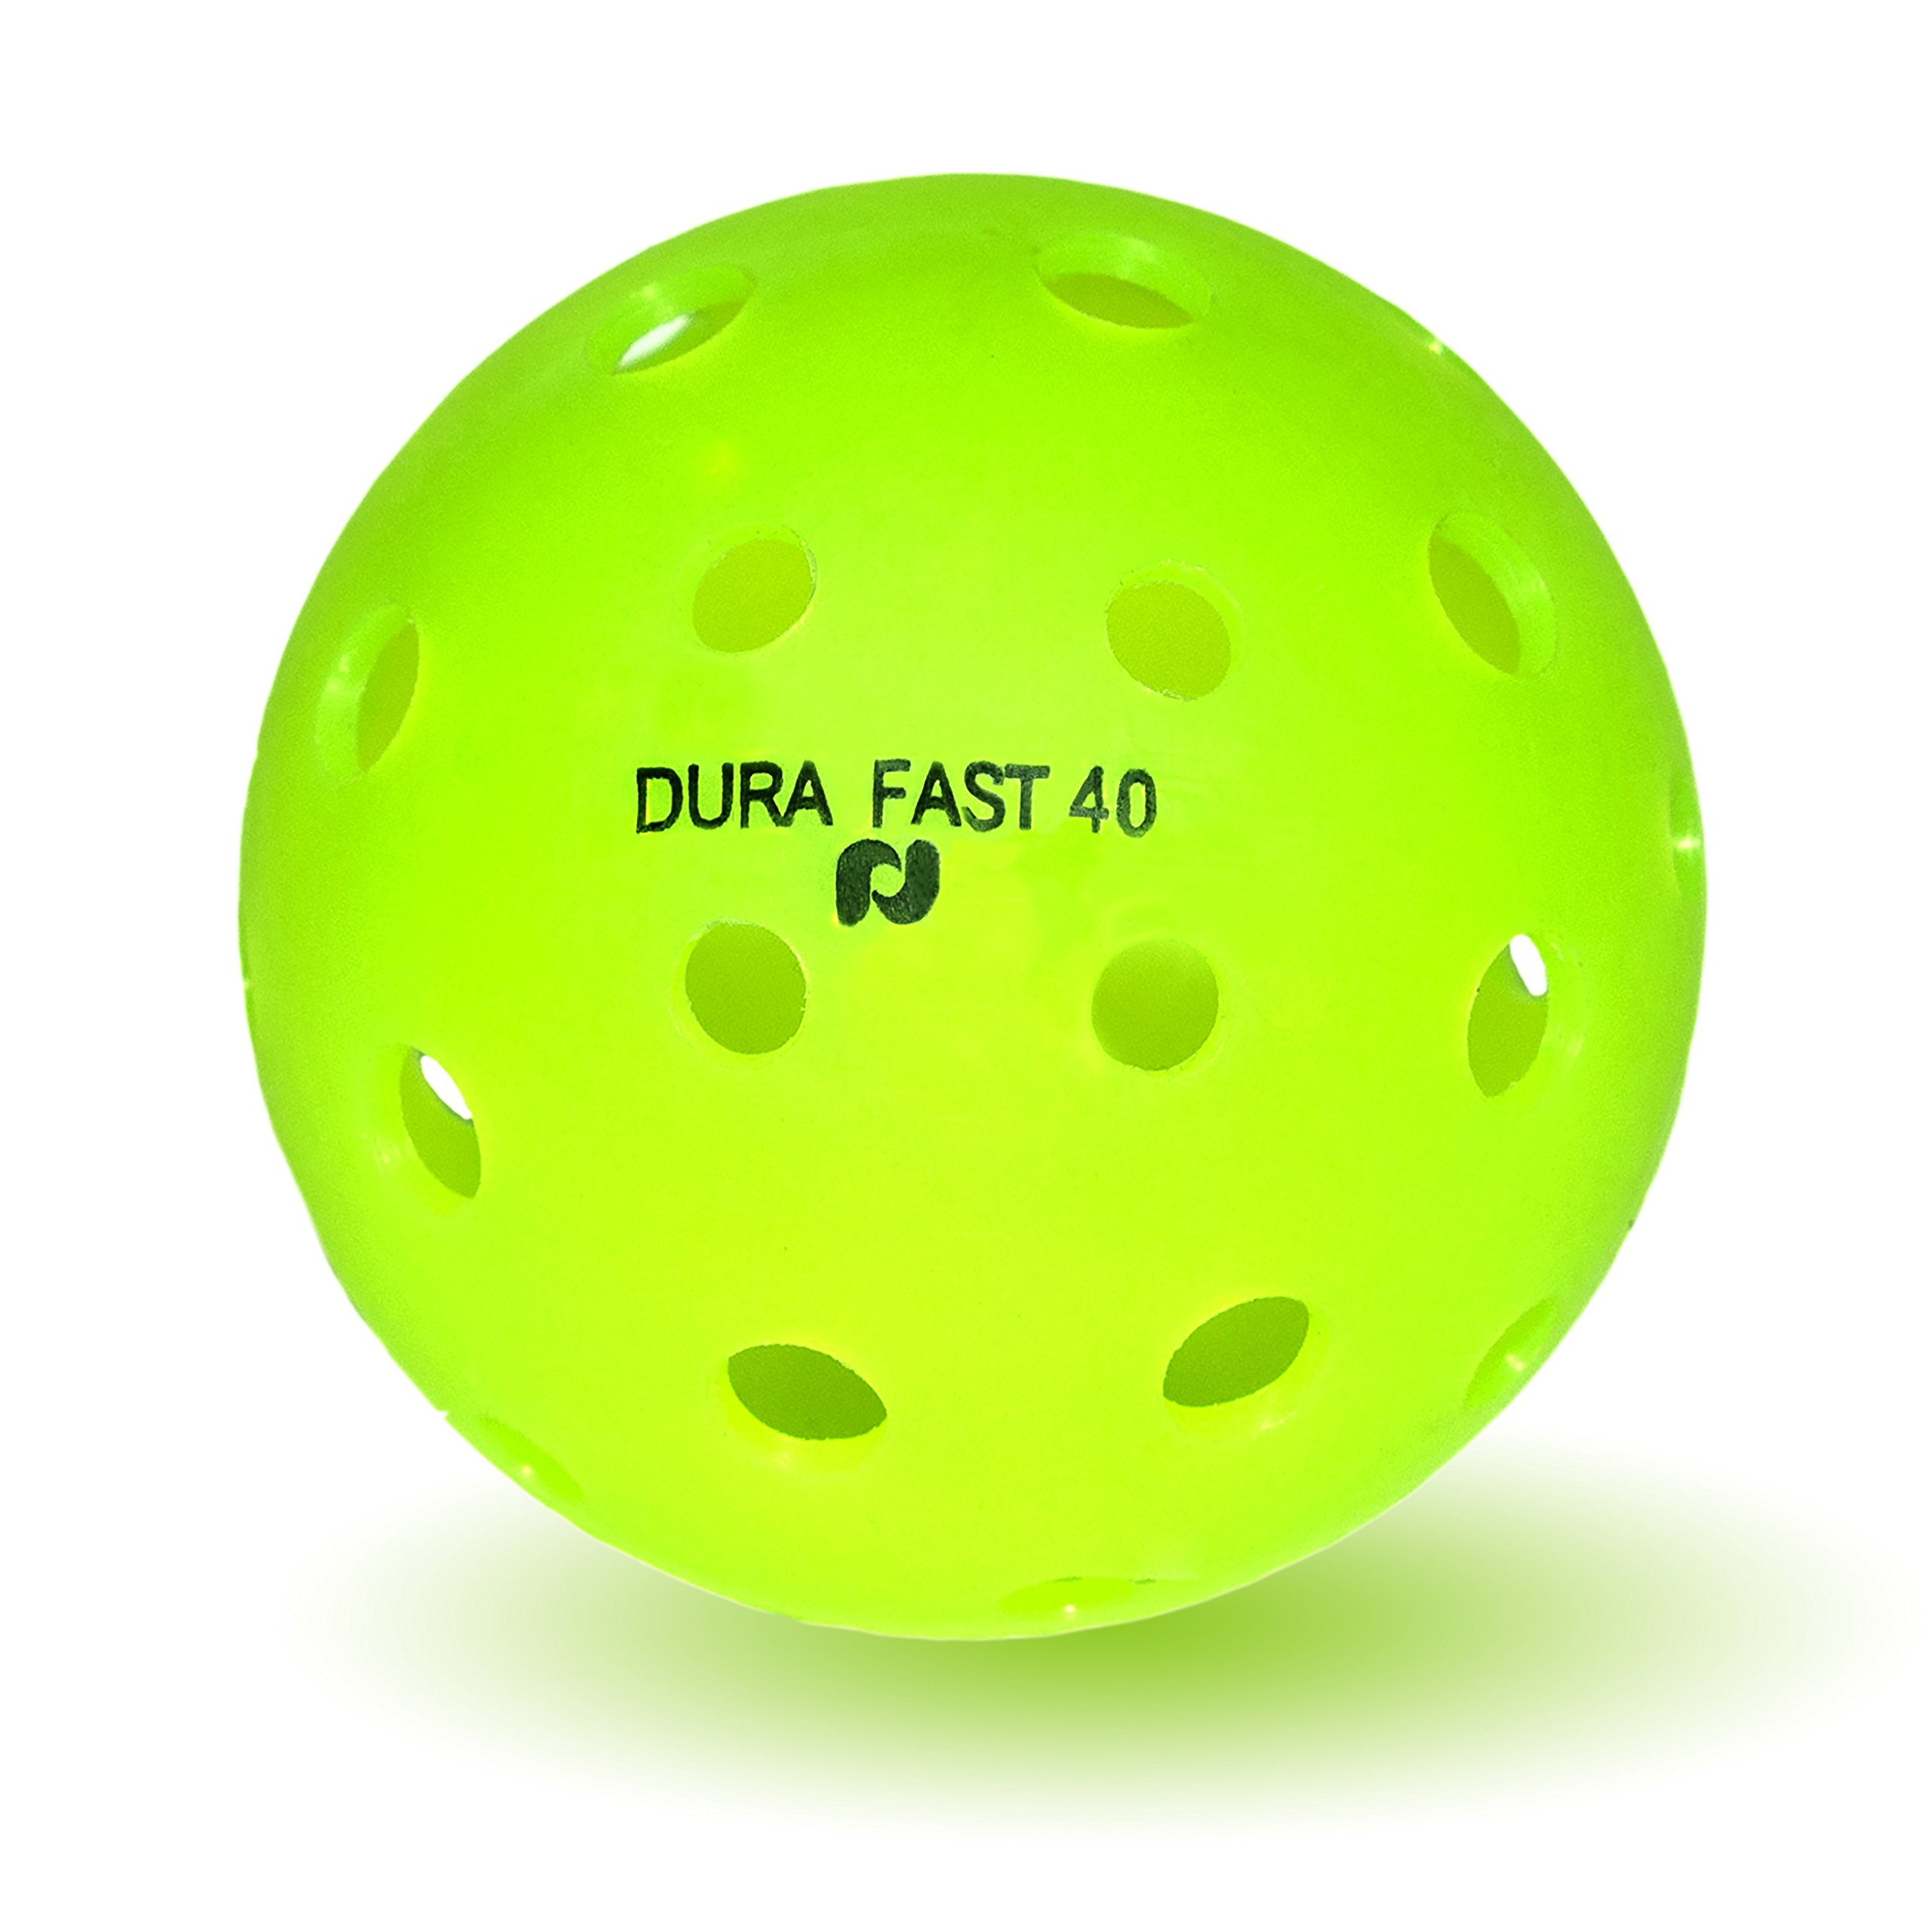 Dura Fast 40 Pickleballs | Outdoor pickleball balls | Neon | Pack of 6 | USAPA Approved and Sanctioned for Tournament Play, Professional Perfomance by Pickle-Ball